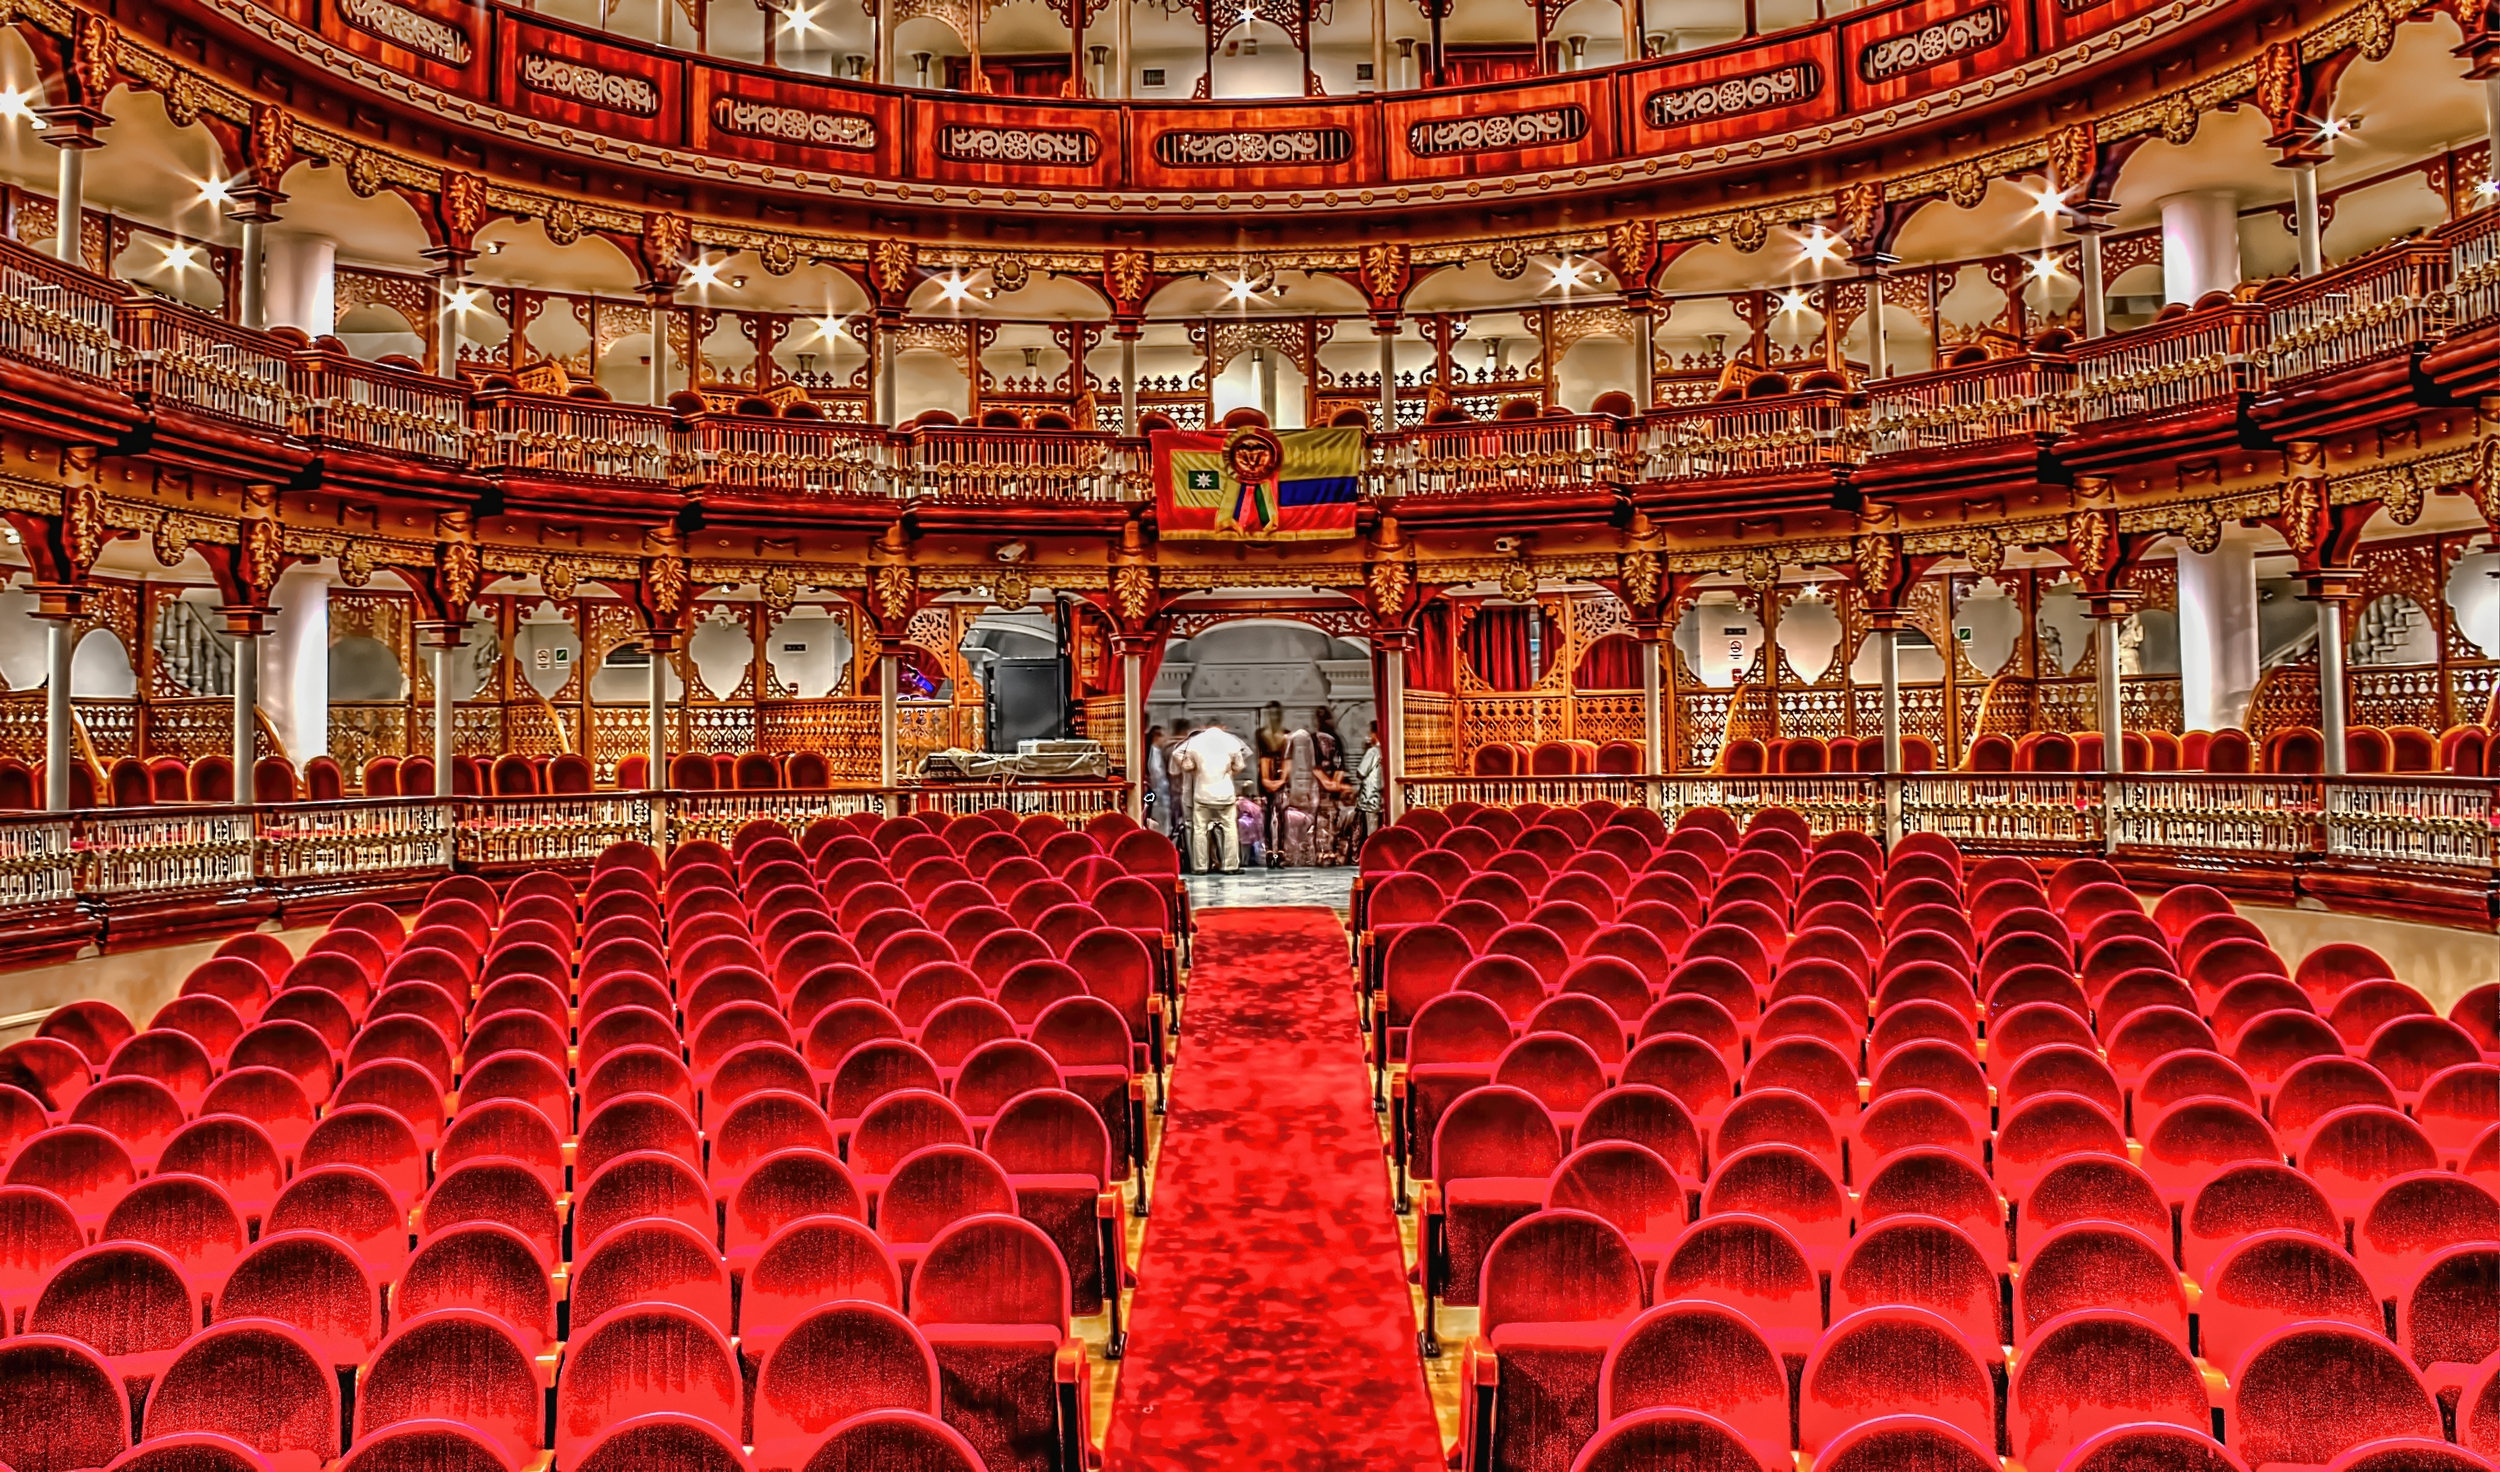 RED  TEATRO HEREDIA EN CARTAGENA. THIS IS A FAMOUSE THEATER   IN CARTAGENA THE FIRST TIME I WAS THERE WAS FOR THE CLASICAL MUSIC FESTUIVAL IN CATAGENA , I ALWAYS WANTED TO GO BACK AND TAKE SOME PICTURES. I WEN THIS YEAR FOR A RECEPTION FOR THE COLOMBIAN NEUROSURGICAL SOCIETY AND AFTER THE EVENT ENDED THERE WAS A SMALL RECEPTION . SO I WAITED TILL IT WAS EMPTY AND TOOK SOME PICTURES.    ROJO TEATRO HEREDIA EN CARTAGENA.   LO CONOCÍ POR PRIMERA VEZ EN EL FESTIVAL DE MÚSICA CLÁSICA DE CARTAGENA HACE UNOS AÑOS Y SIEMPRE QUISE VOLVER Y TOMARLE ALGUNAS FOTOS. ESTE AÑO TUVE LA OPORTUNIDAD QUE DESPUÉS DE UNA RECEPCIÓN DE LA ASOCIACIÓN COLOMBIANA DE NEUROCIRUGÍA , ME QUEDE ESPERANDO MIENTRAS TODOS IBAN A UNA RECEPCIÓN EN EL SALÓN ADYACENTE Y TUVE EL TEATRO PARA MI SOLO.